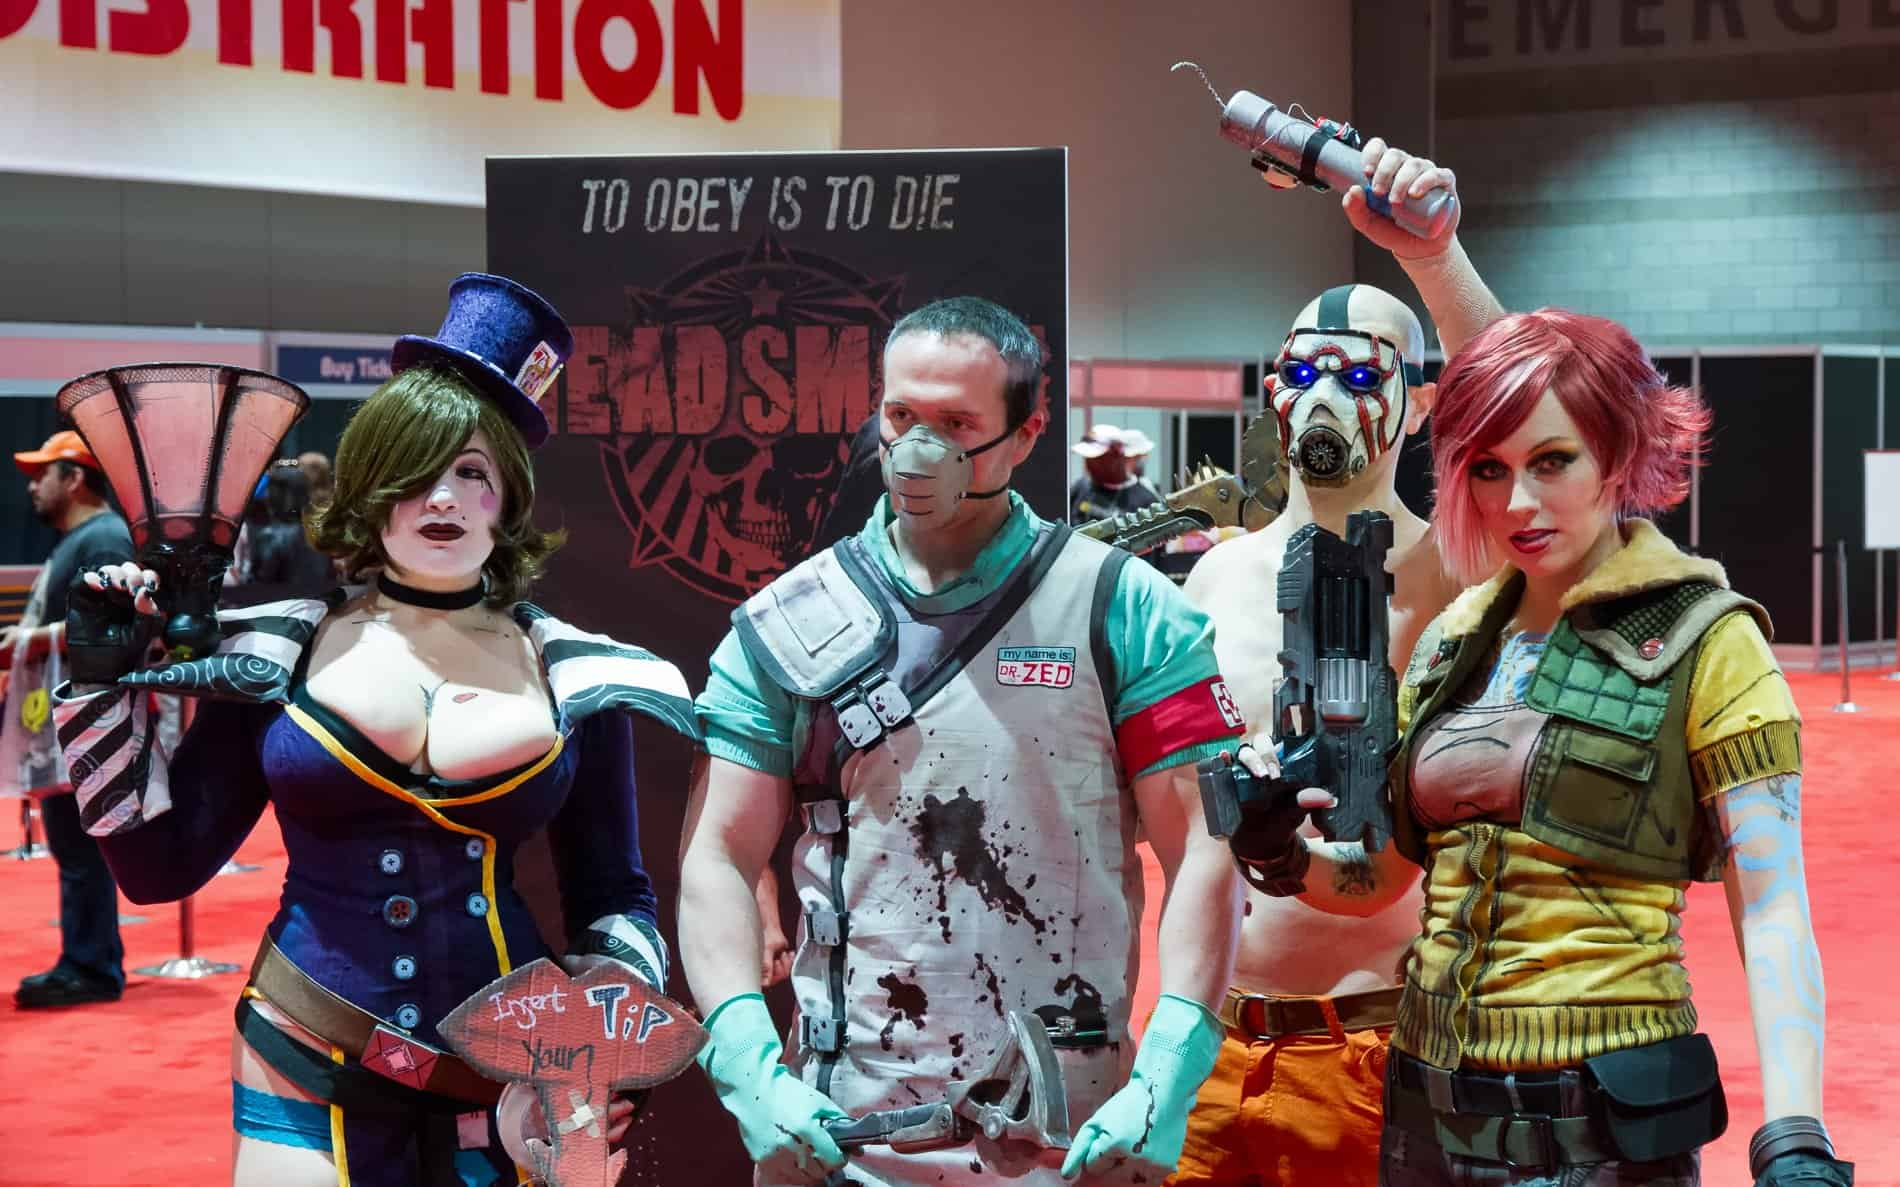 Four Borderlands 2 cosplayers at C2E2 2013